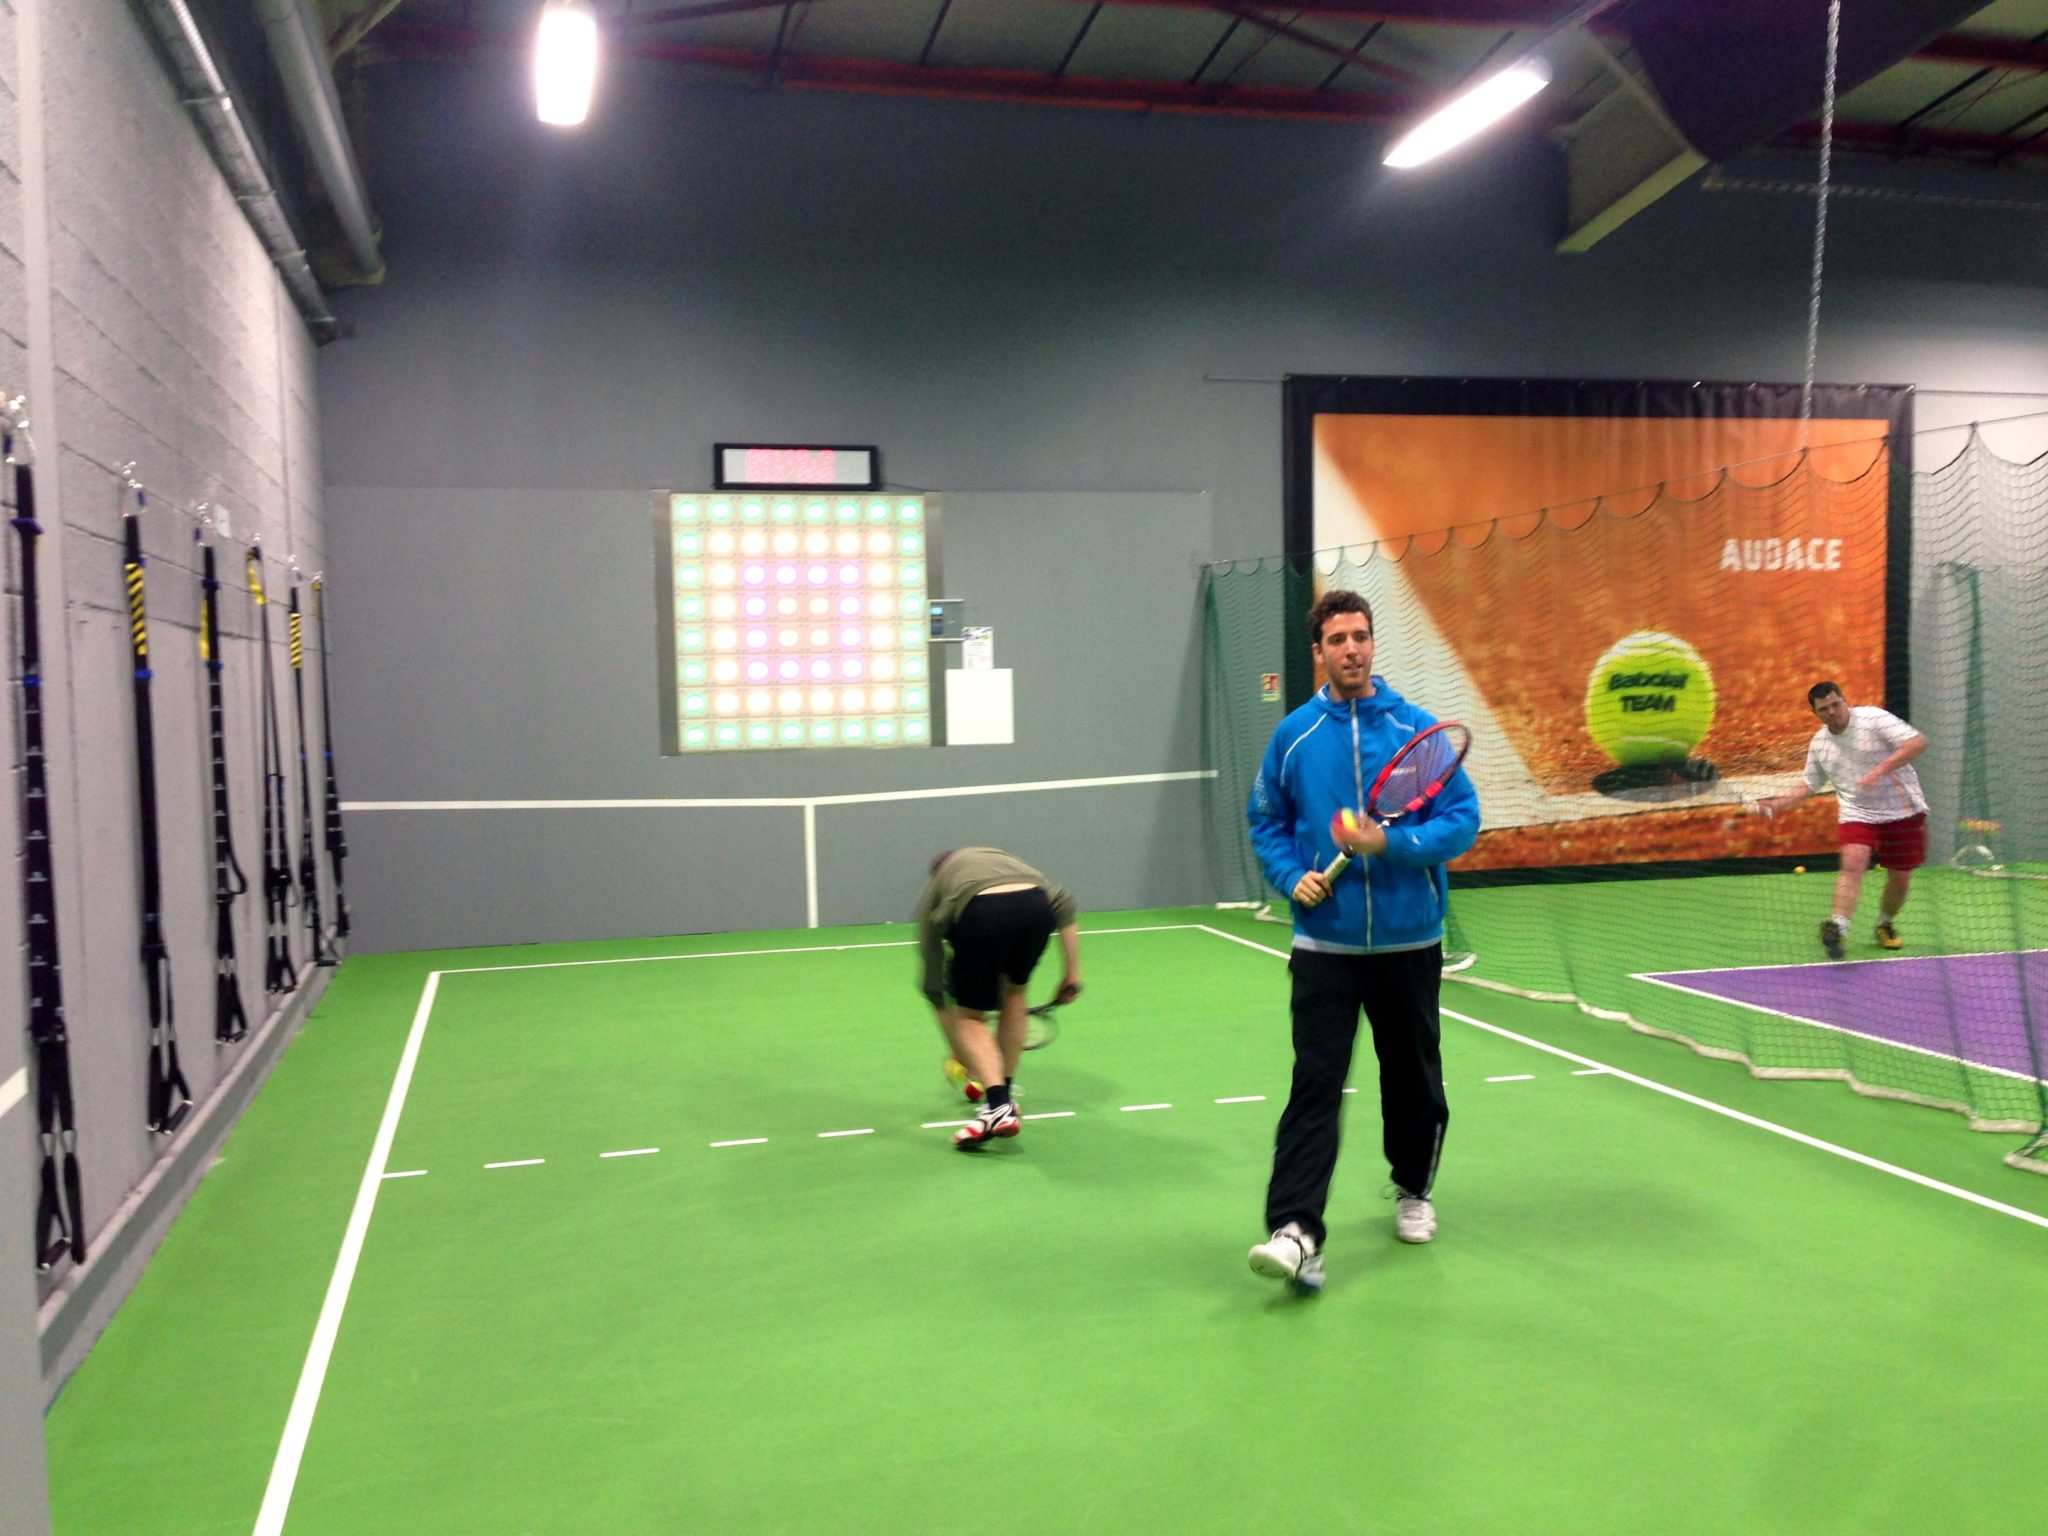 my tennis experience test04